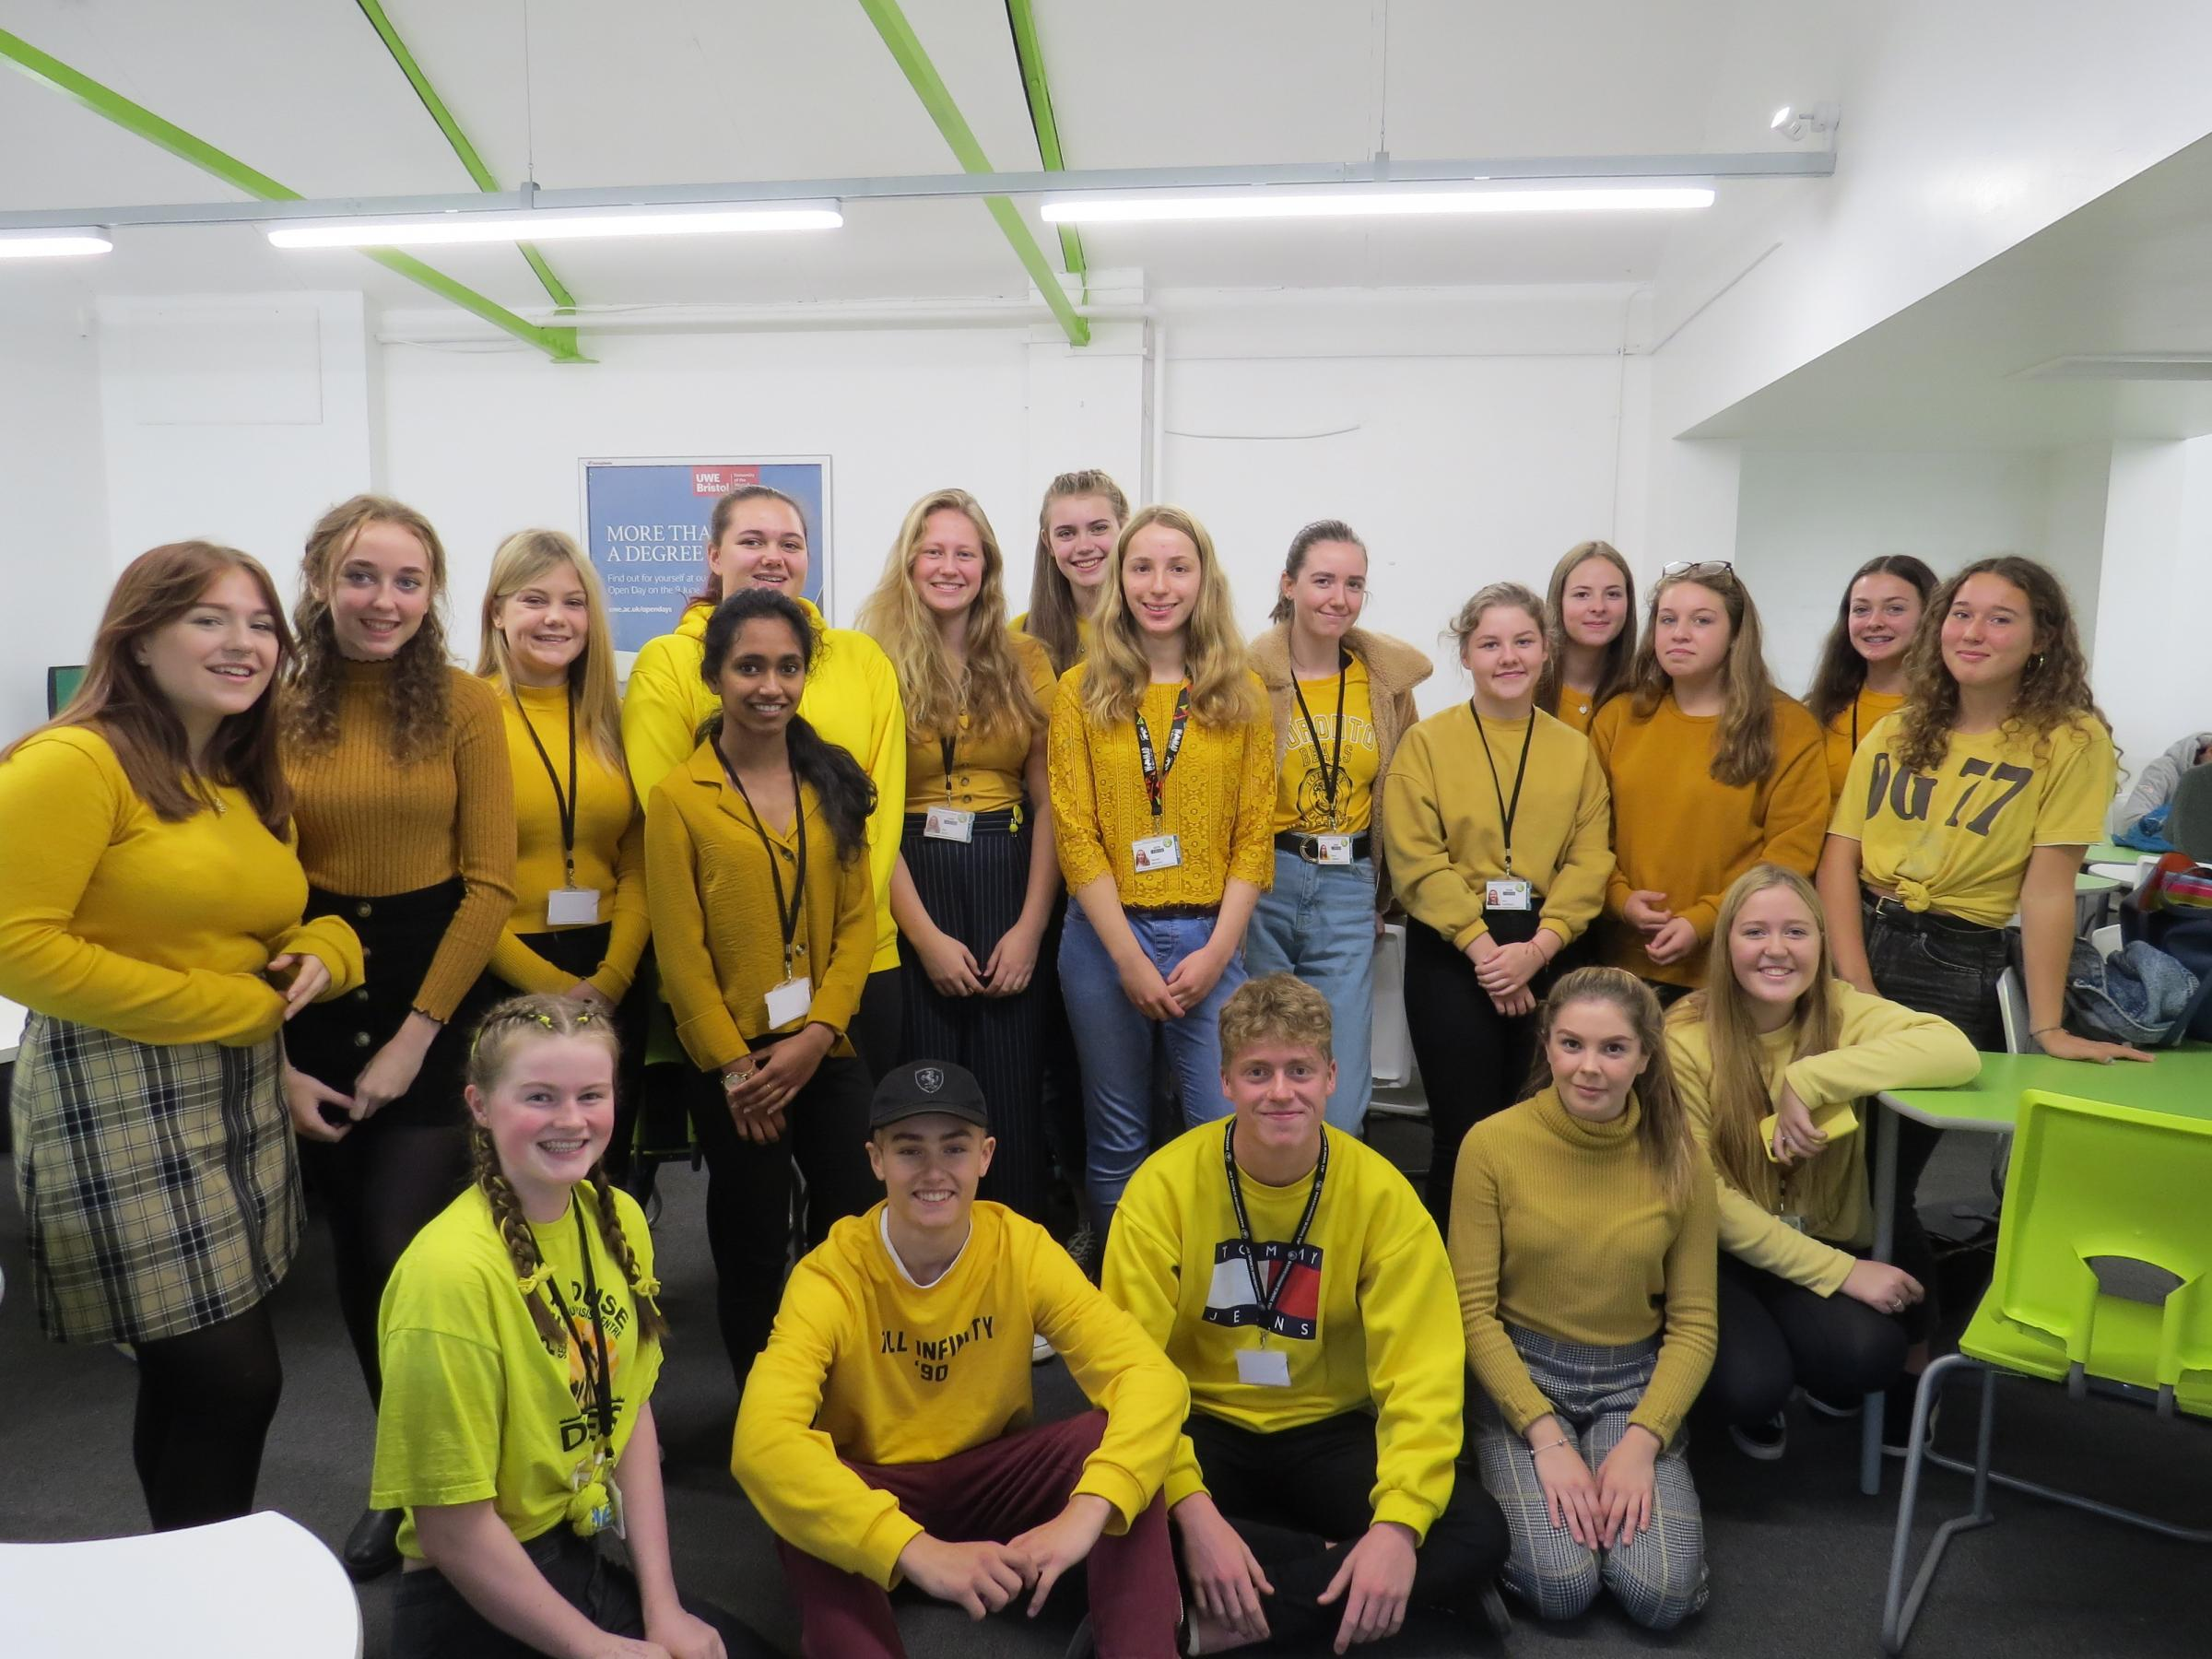 Sixth Form students from Hardenhuish School wearing yellow in celebration of World Mental Health Day